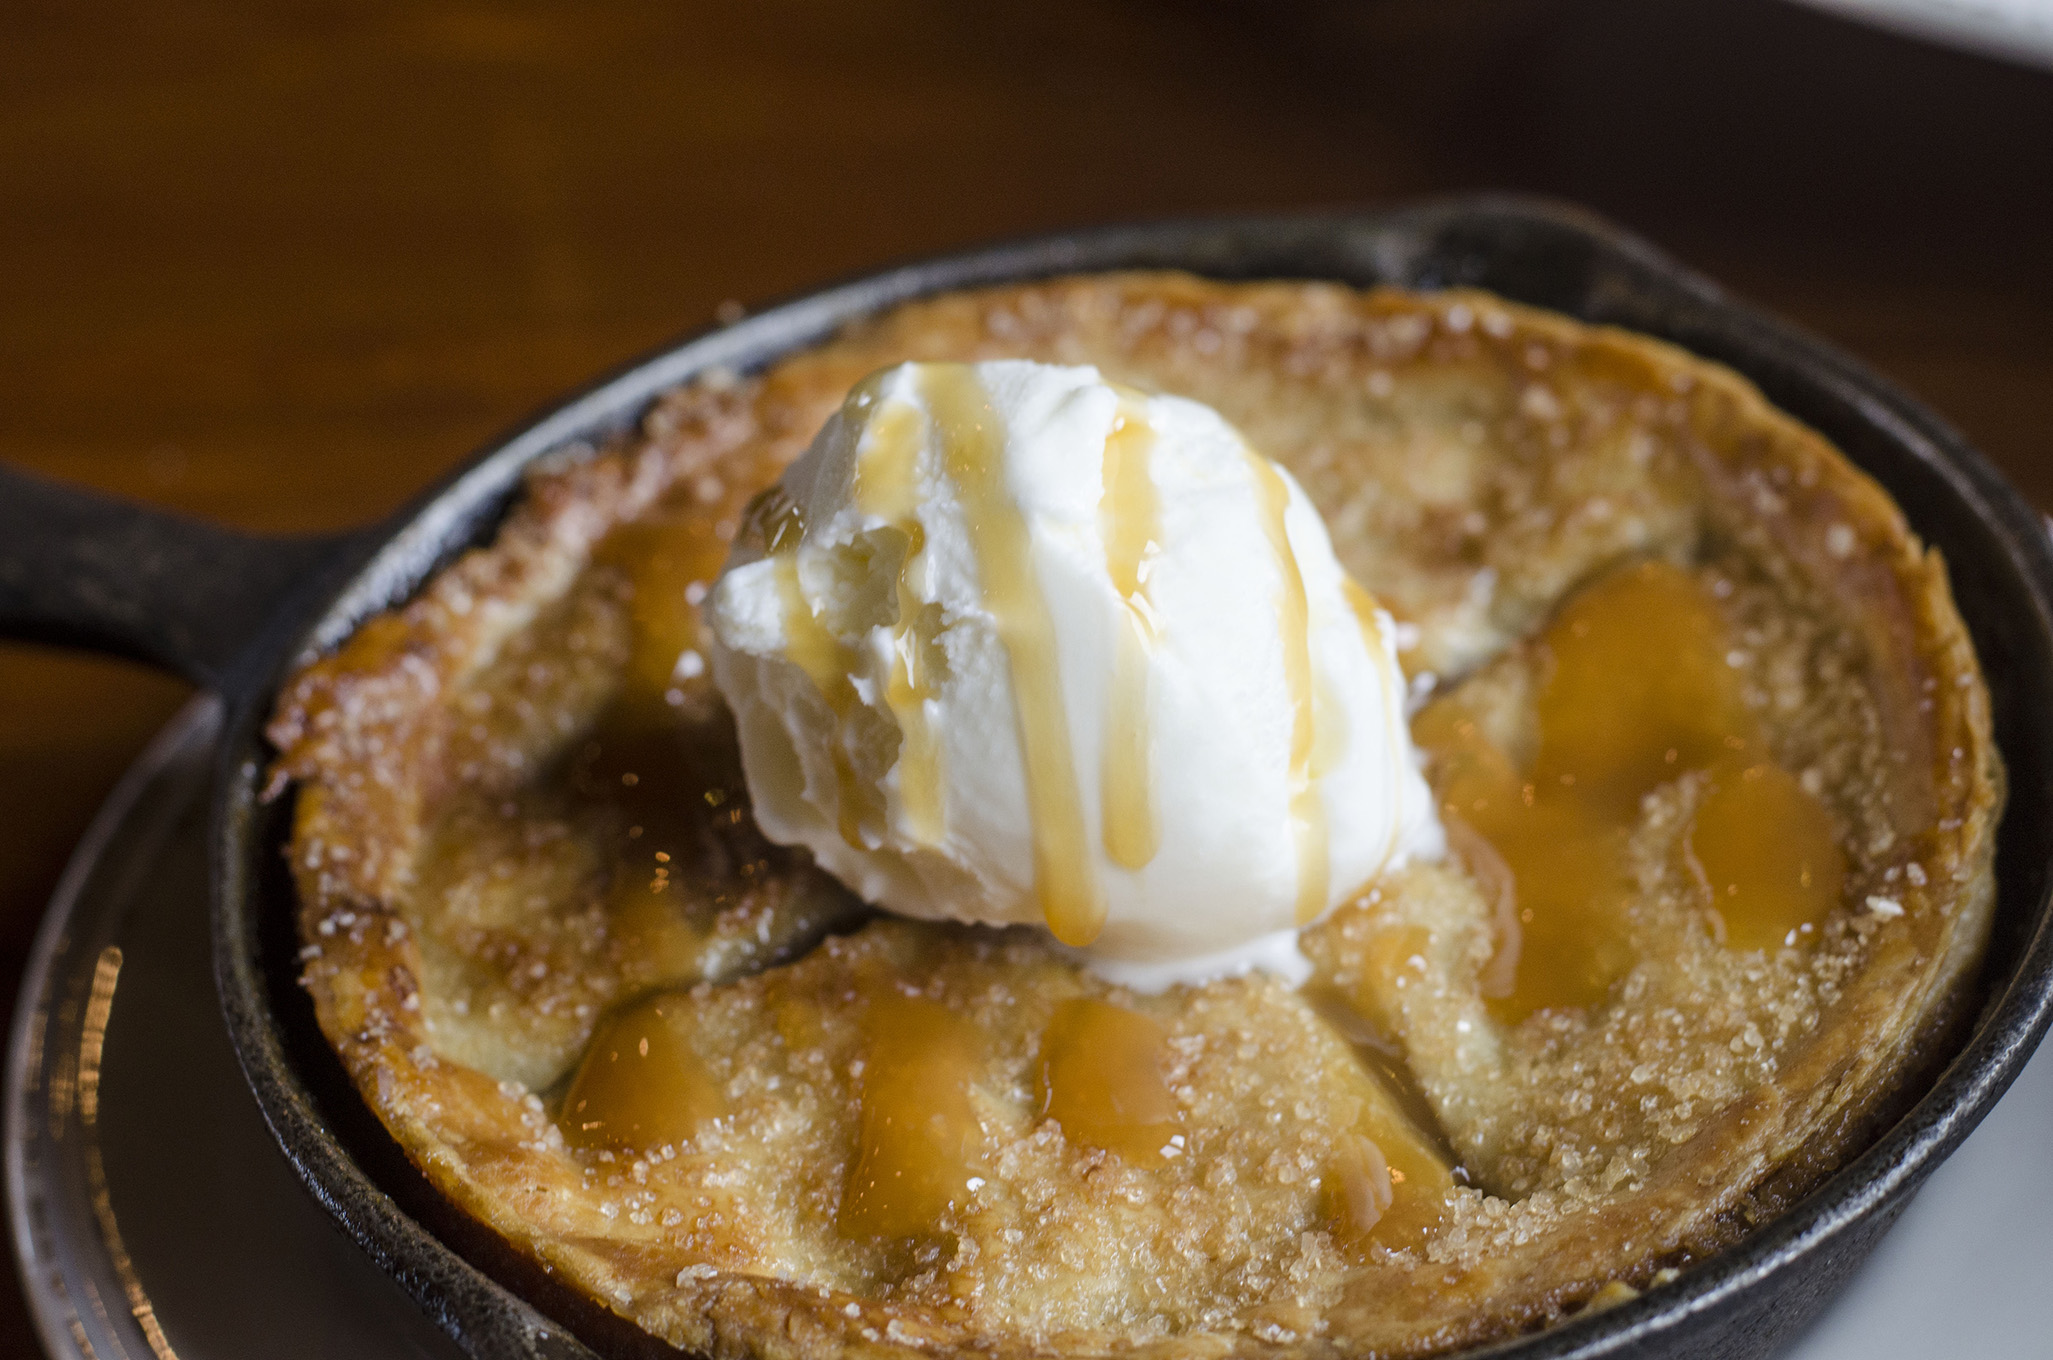 Apple Pie Skillet from Billy's Taphouse